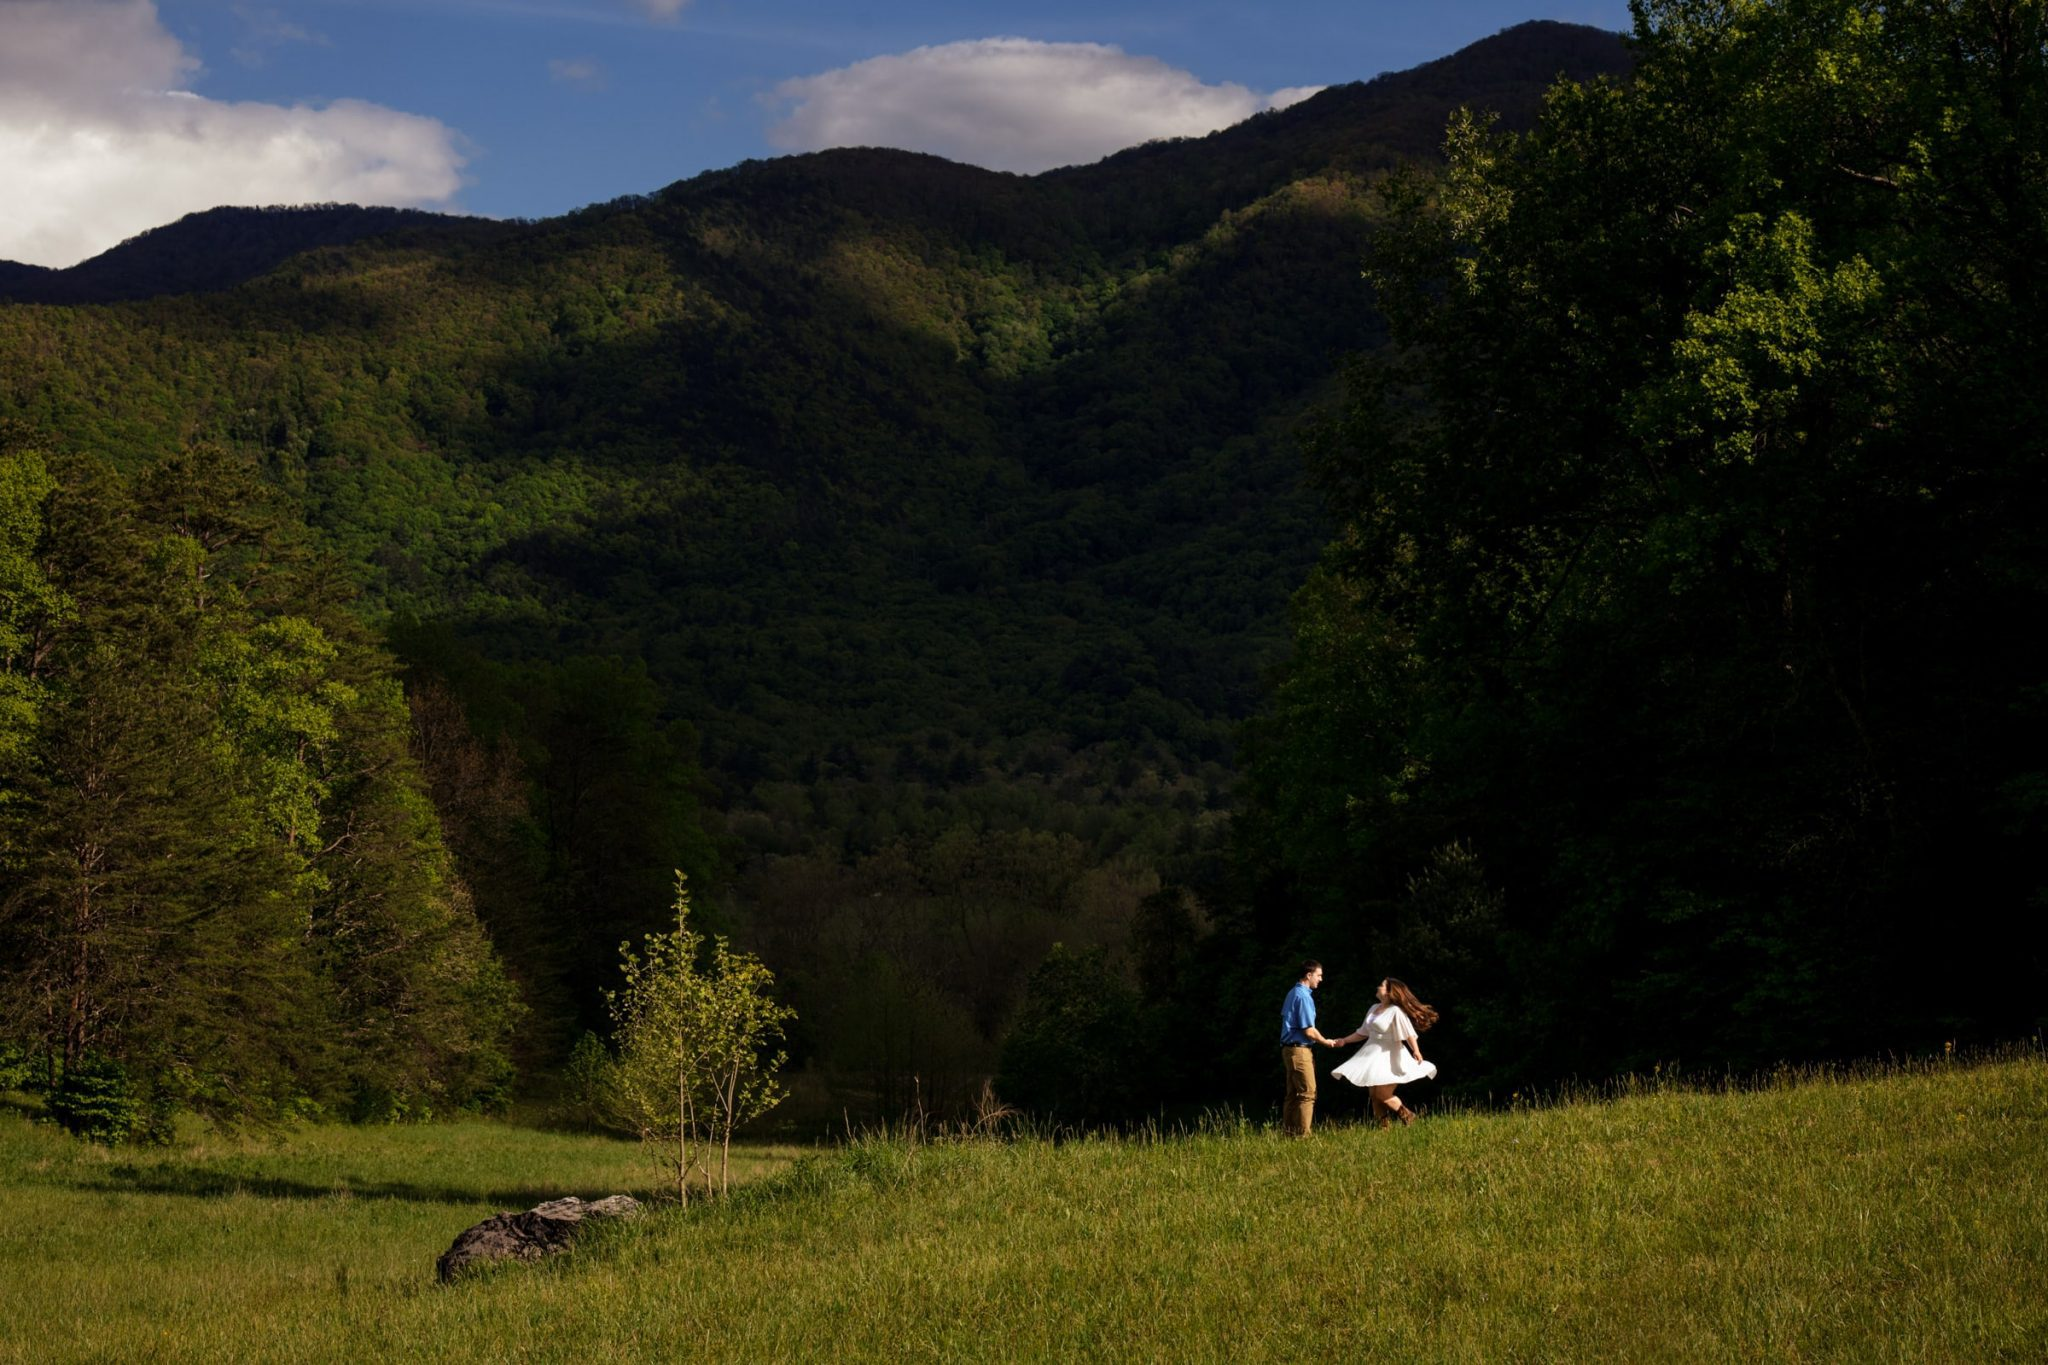 Couple walking during an engagement photoshoot in cades cove national park